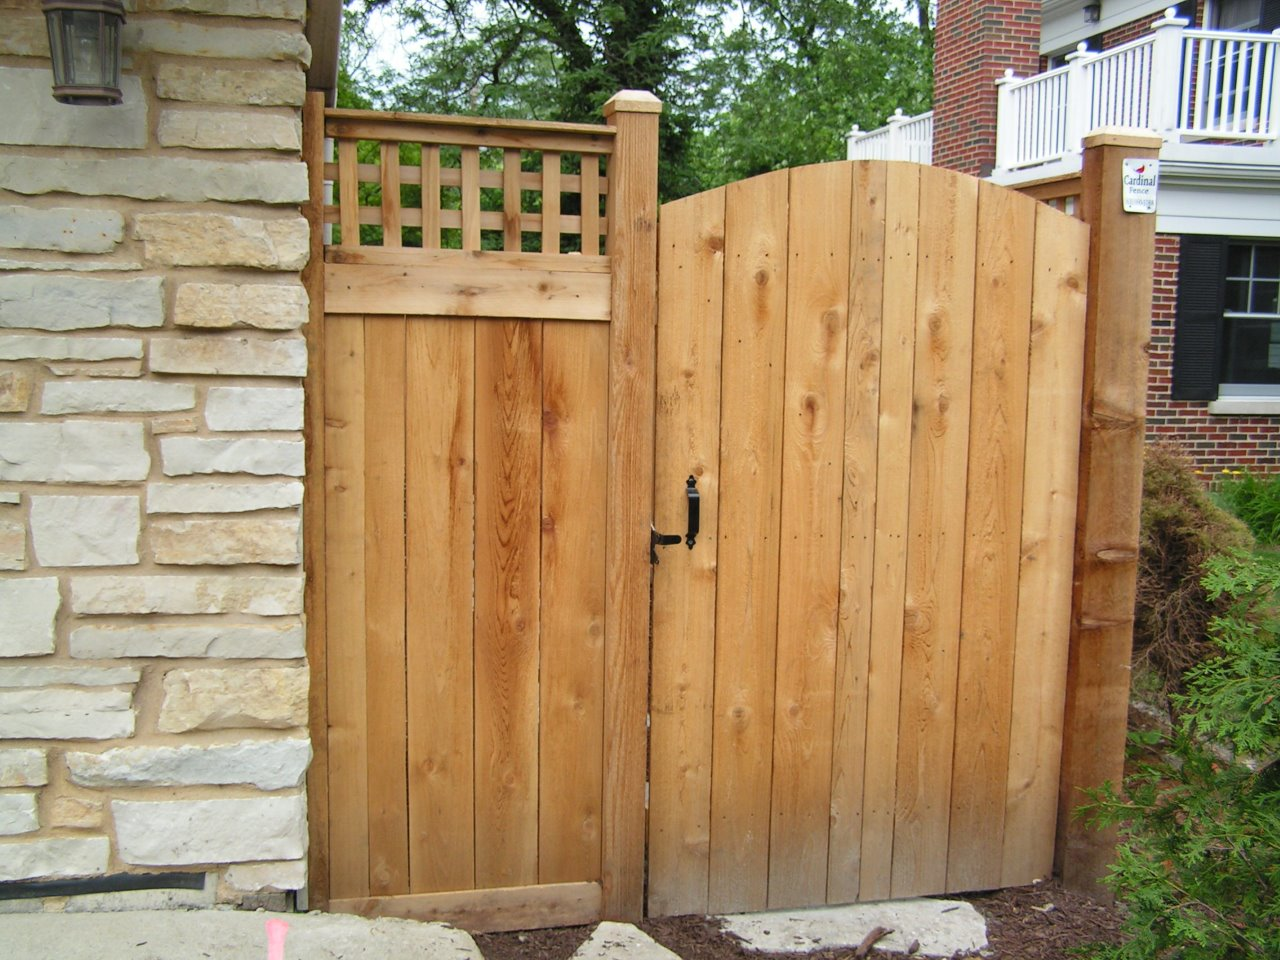 6 Traditional With Square Lattice Arched Gate Outside